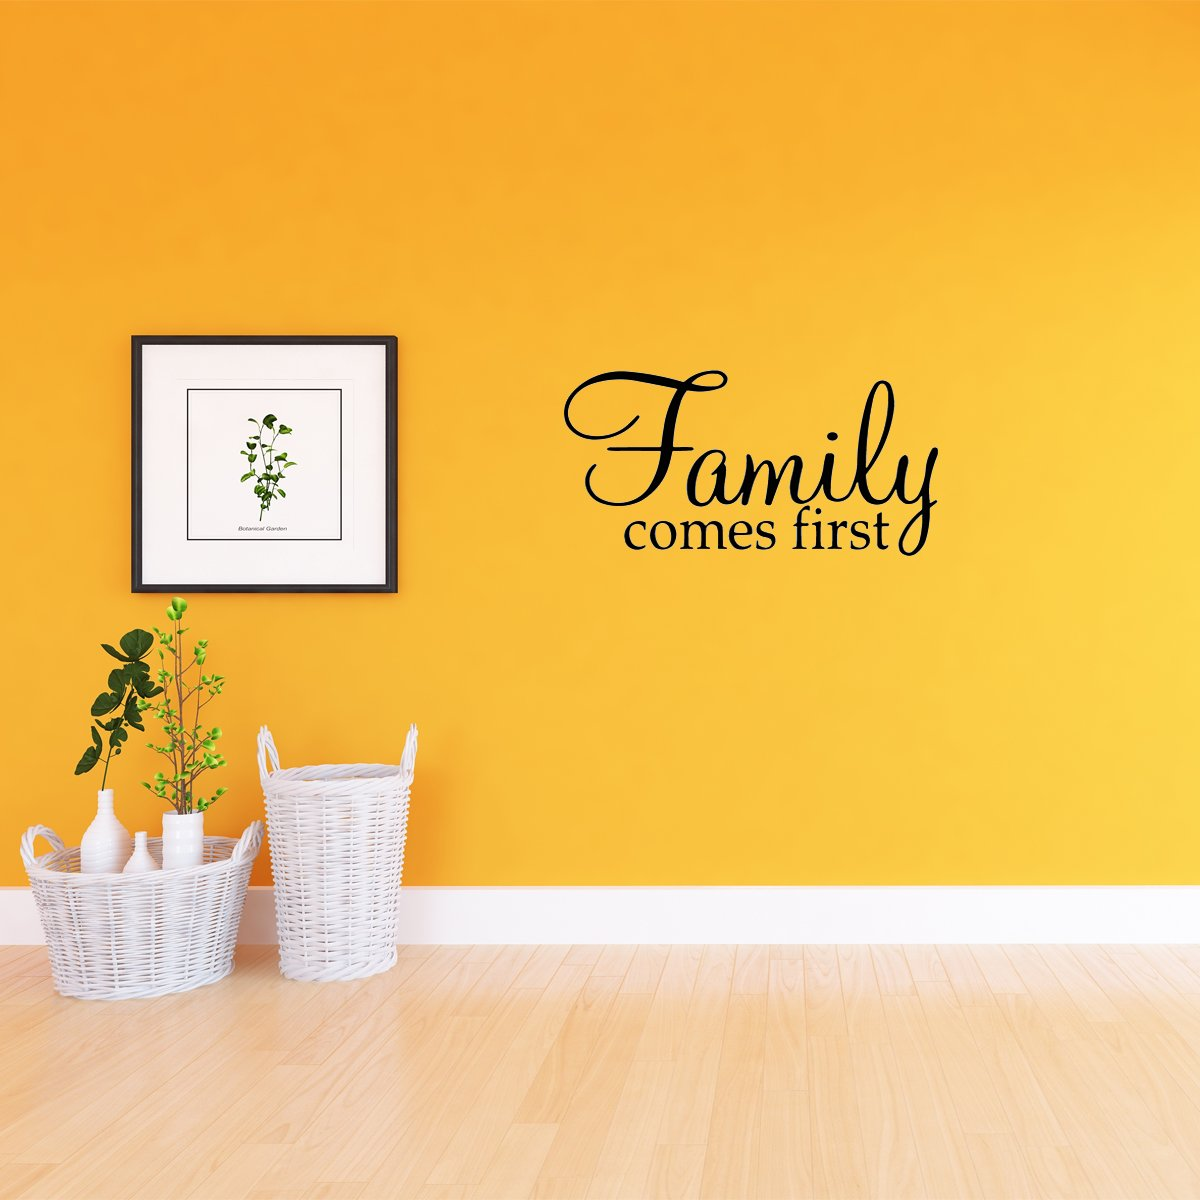 Vwaq Family Comes First Home Decor Vinyl Wall Art Decal